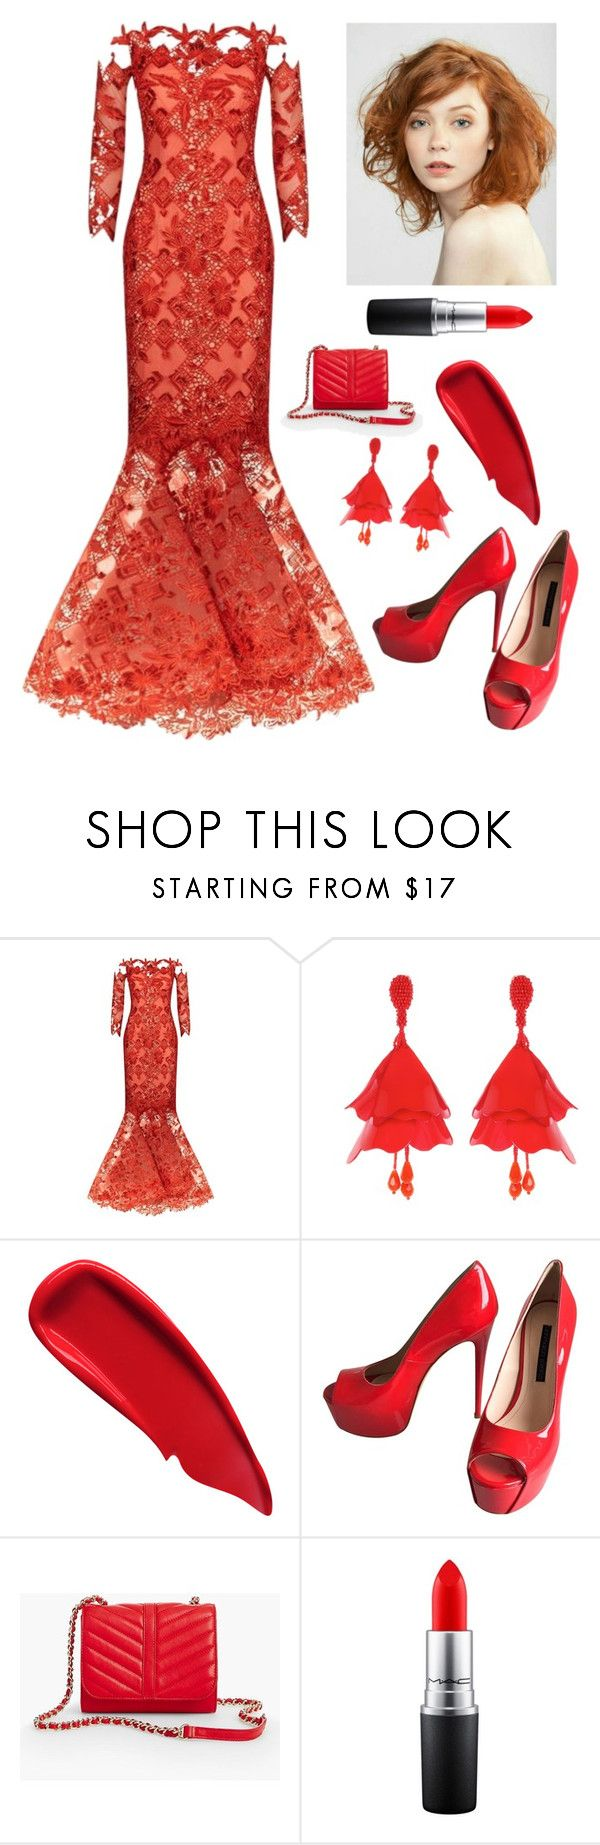 """Red Laced Gown"" by kotnourka ❤ liked on Polyvore featuring Mikael D, Oscar de la Renta, Sisley, Gianmarco Lorenzi, Talbots and MAC Cosmetics"